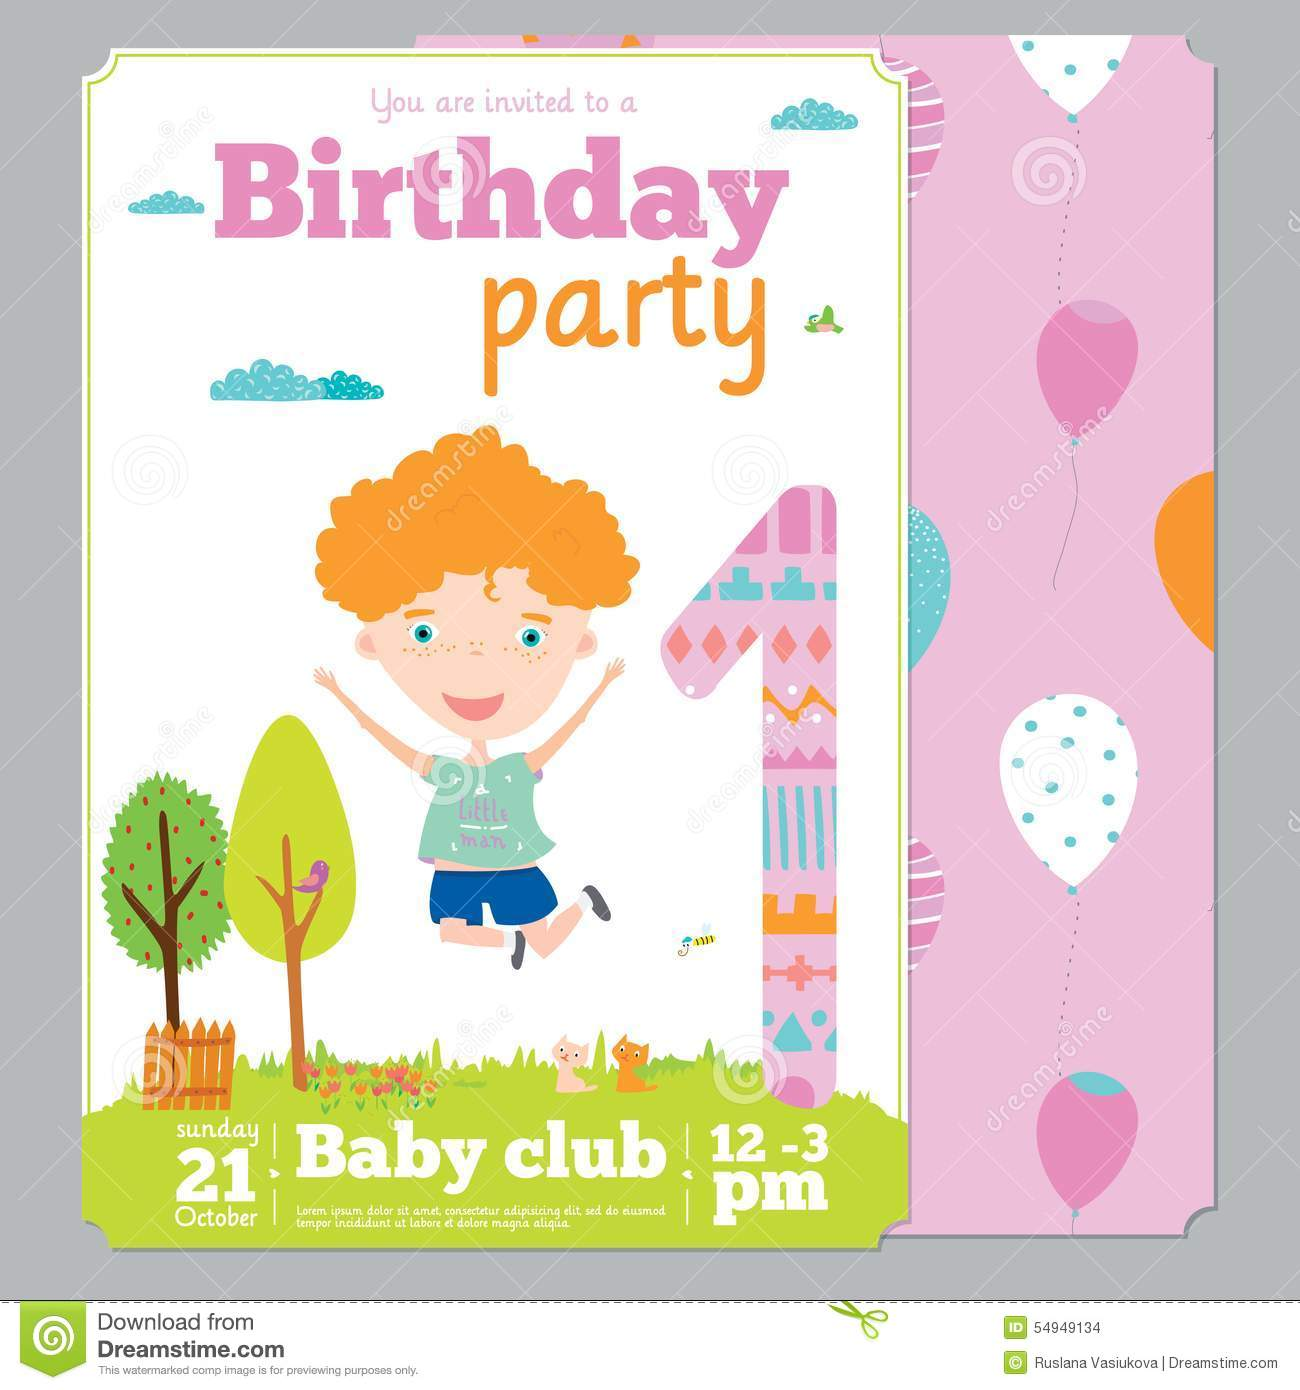 Invitation cards for birthday party template akbaeenw invitation cards for birthday party template invitations birthday party invitation templates biagigelato stopboris Choice Image